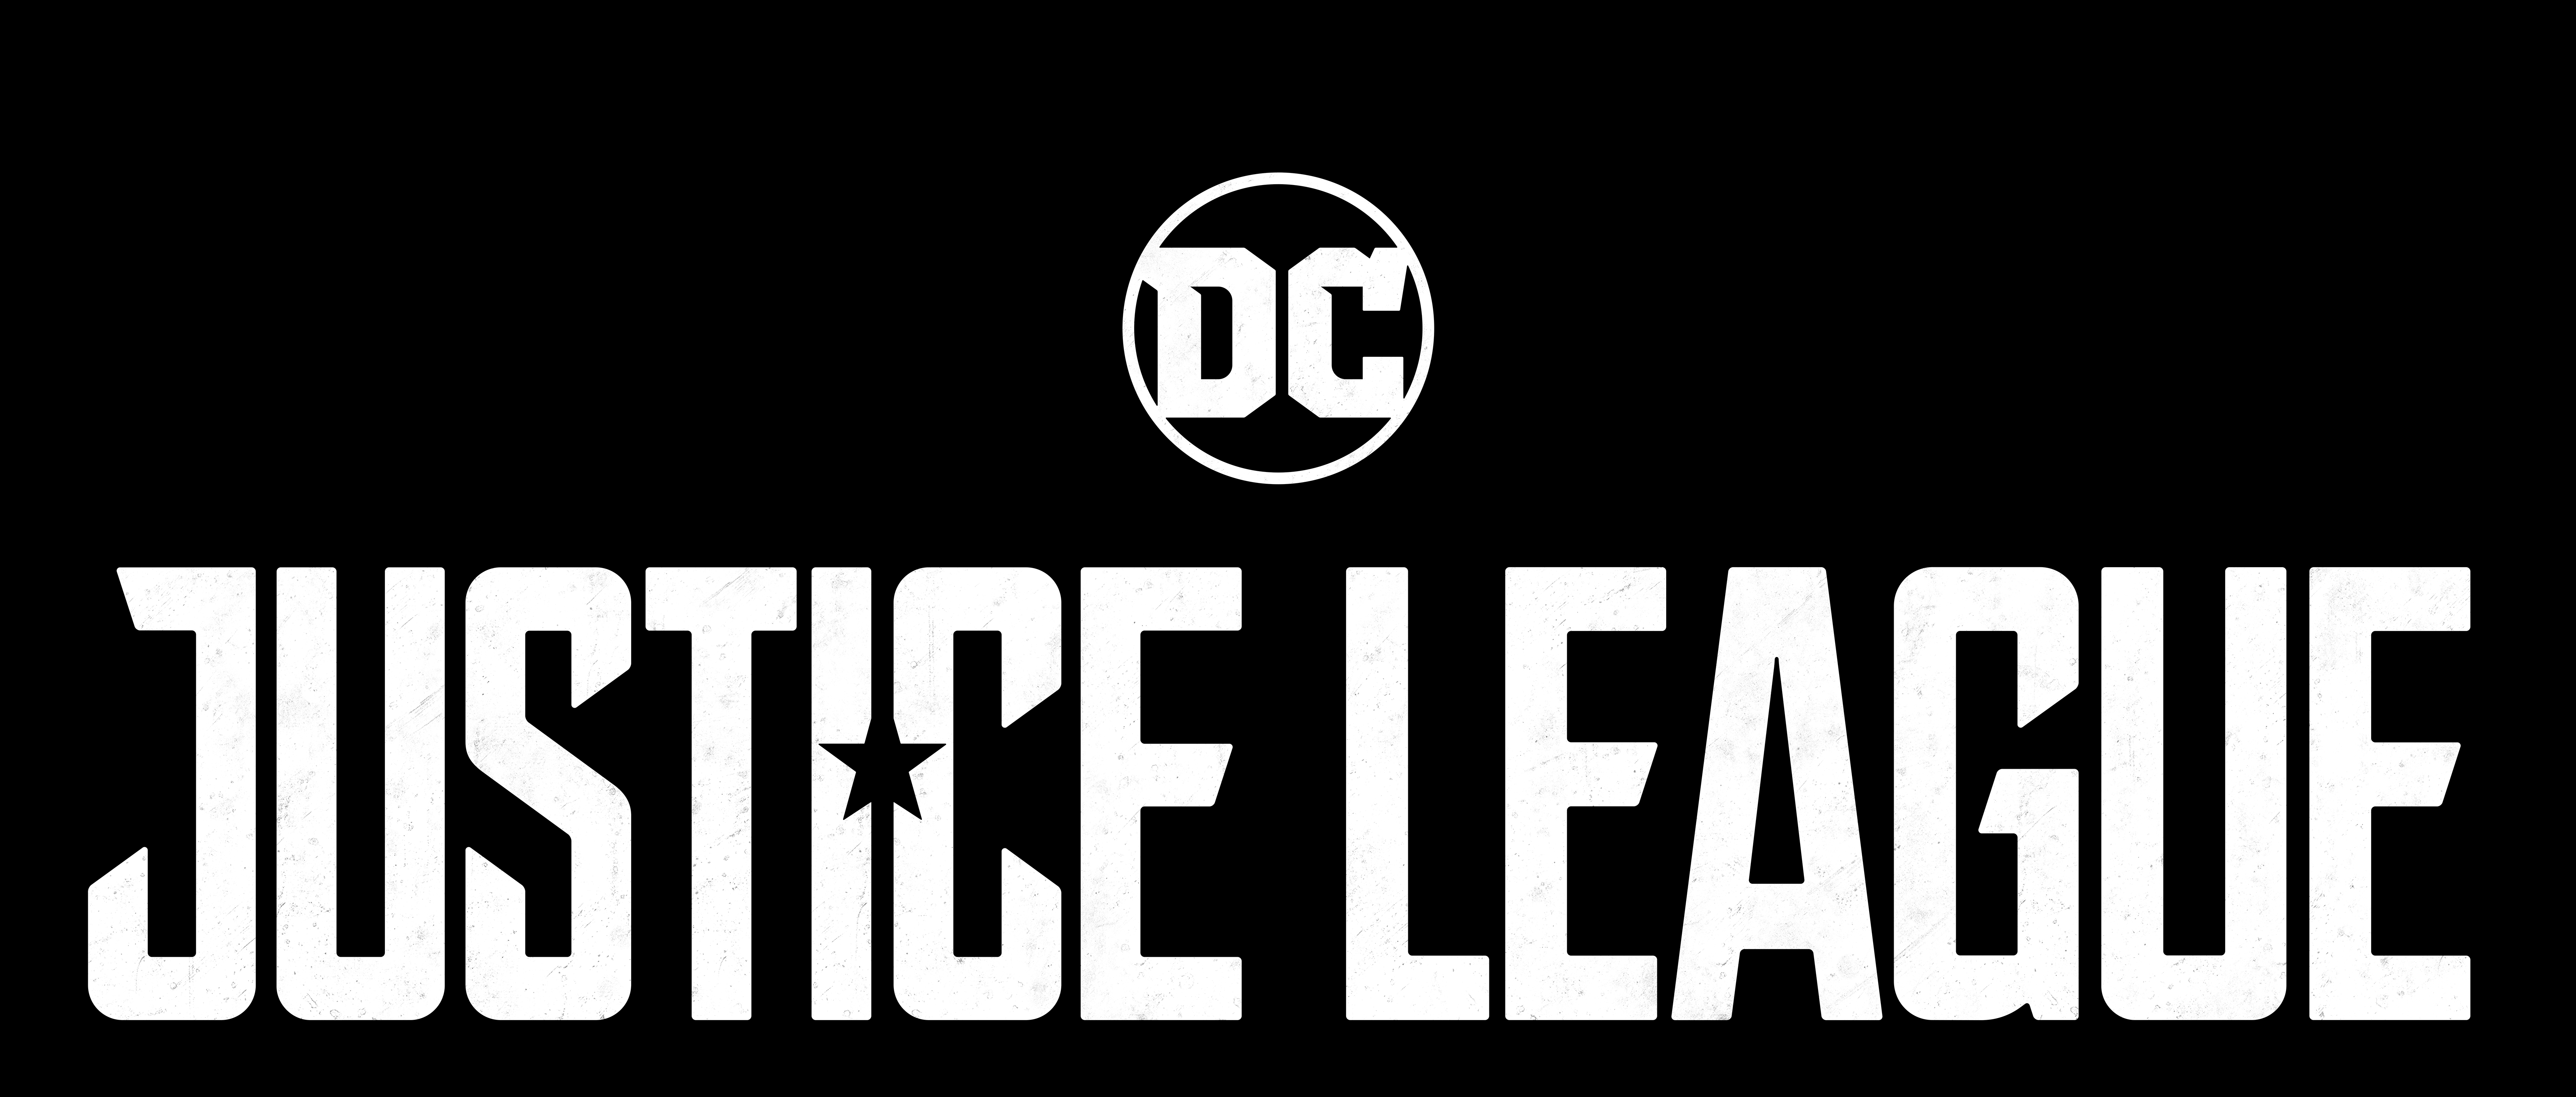 Updated 'Justice League' logo pushes the DC brand forward ... Justice League Emblem Images